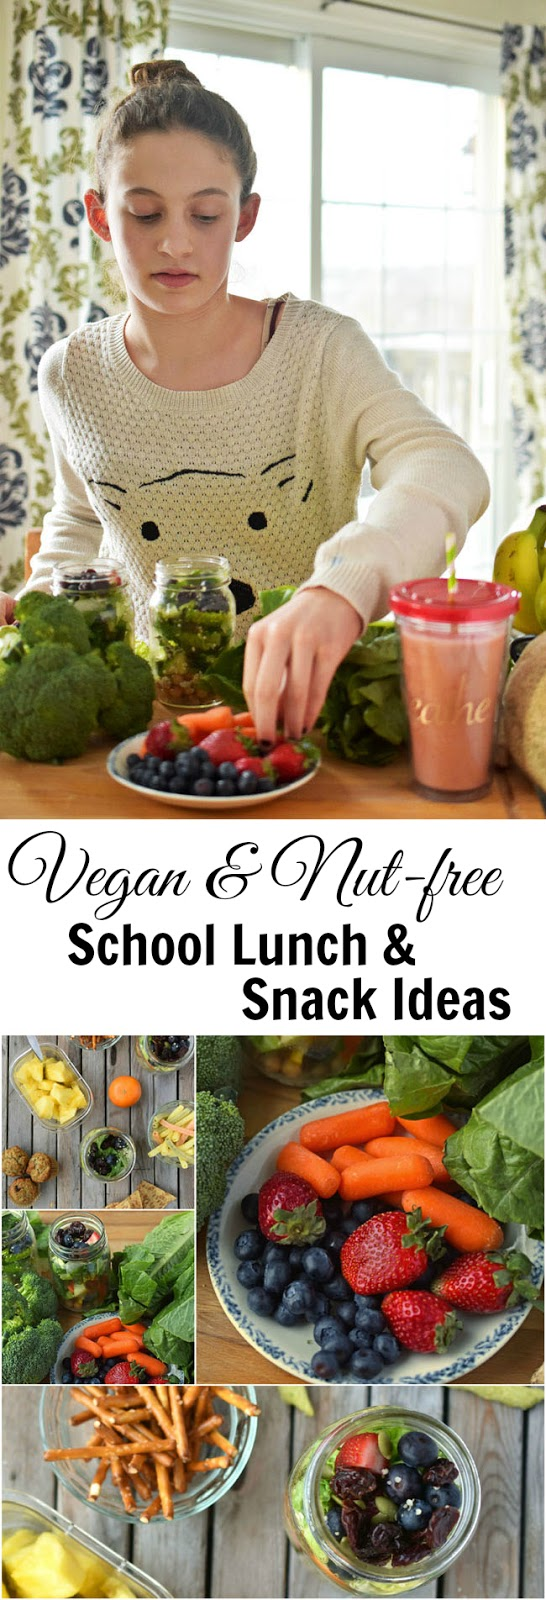 40+ ideas for vegan and nut-free school lunches and snacks - great for work too!